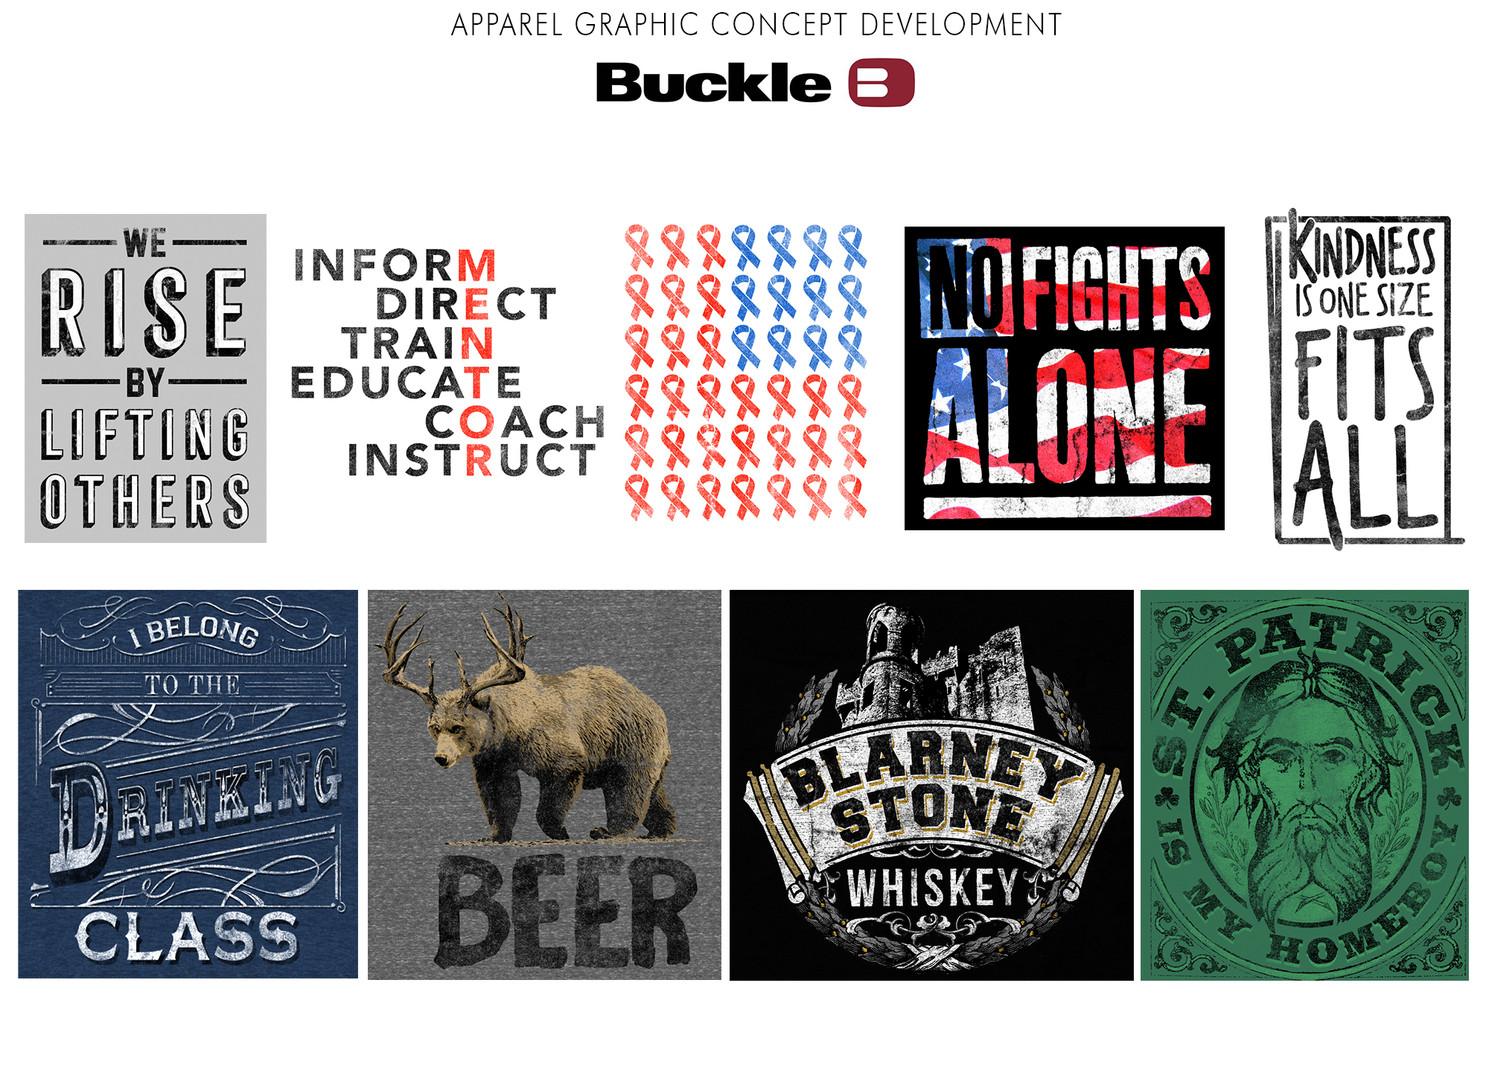 Apparel graphic concept development for Buckle.